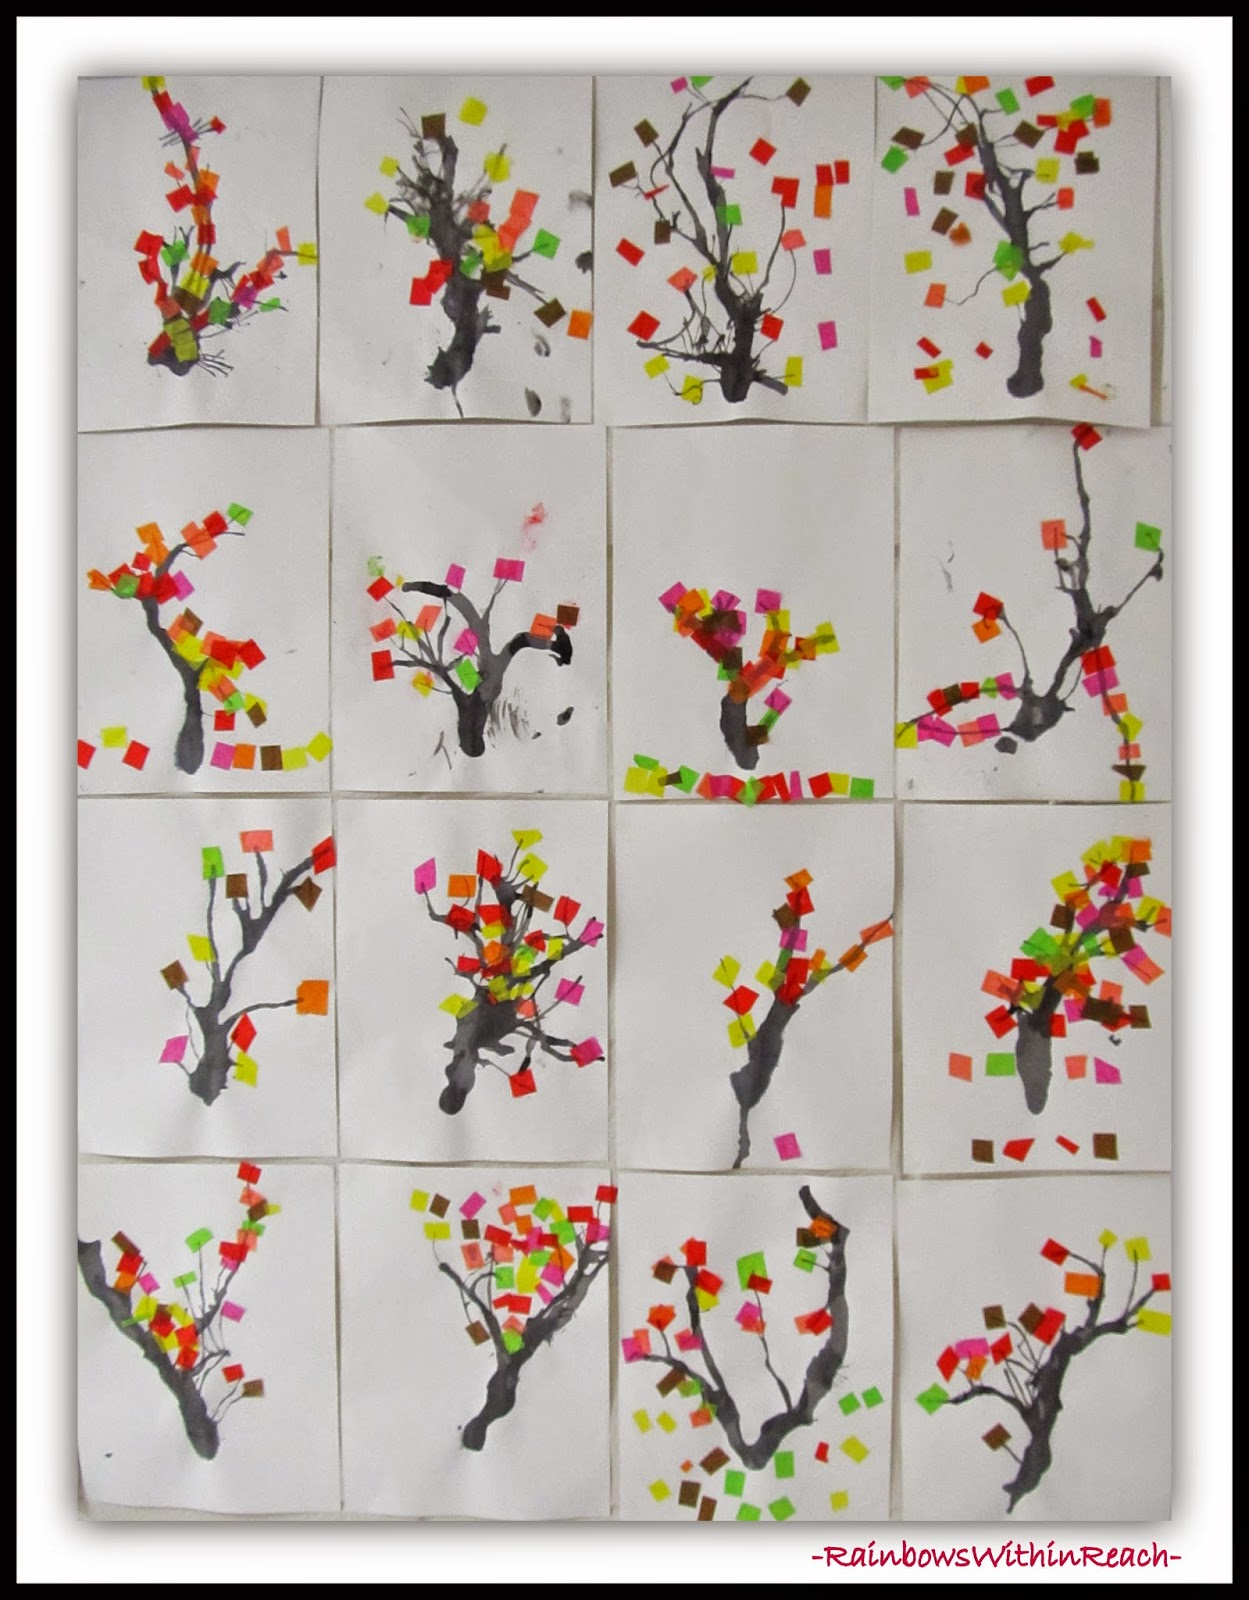 Multi-media Blown Ink and Tissue Paper for Spring Blossoms at RainbowsWithinReach